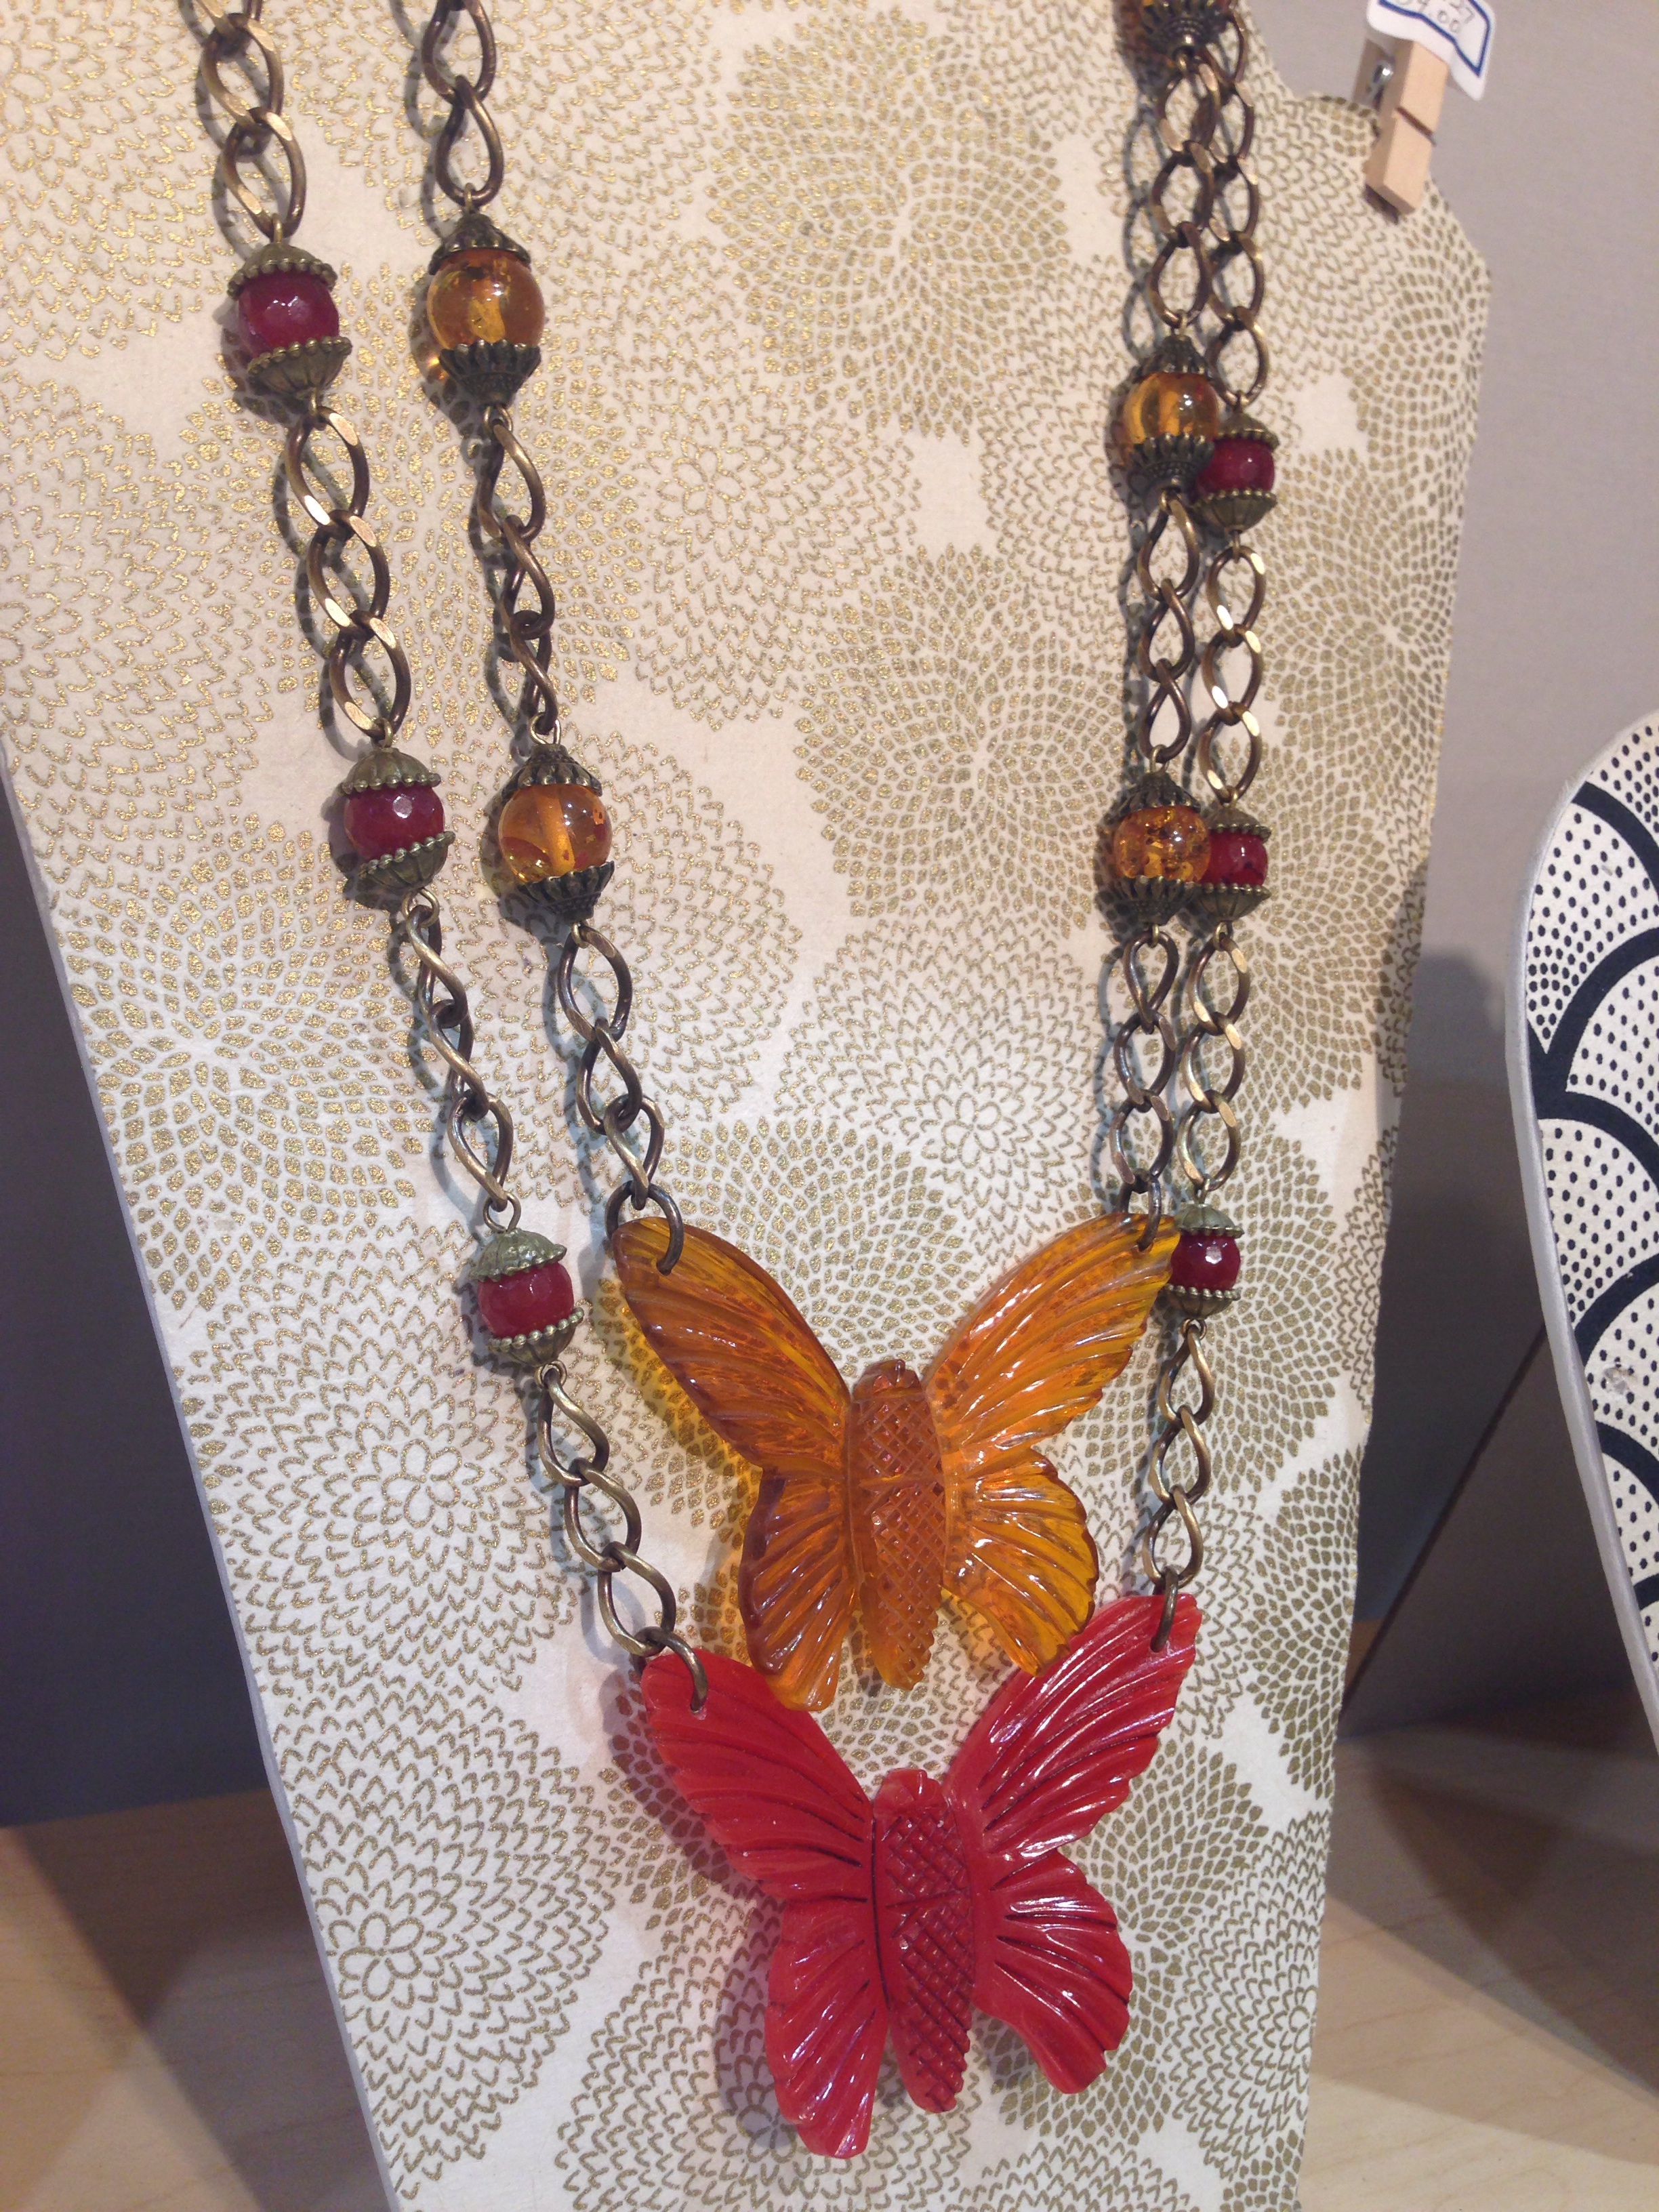 Butterflies in red and apple juice. The apple juice is paired with amber, the red butterfly is paired with carnelian.